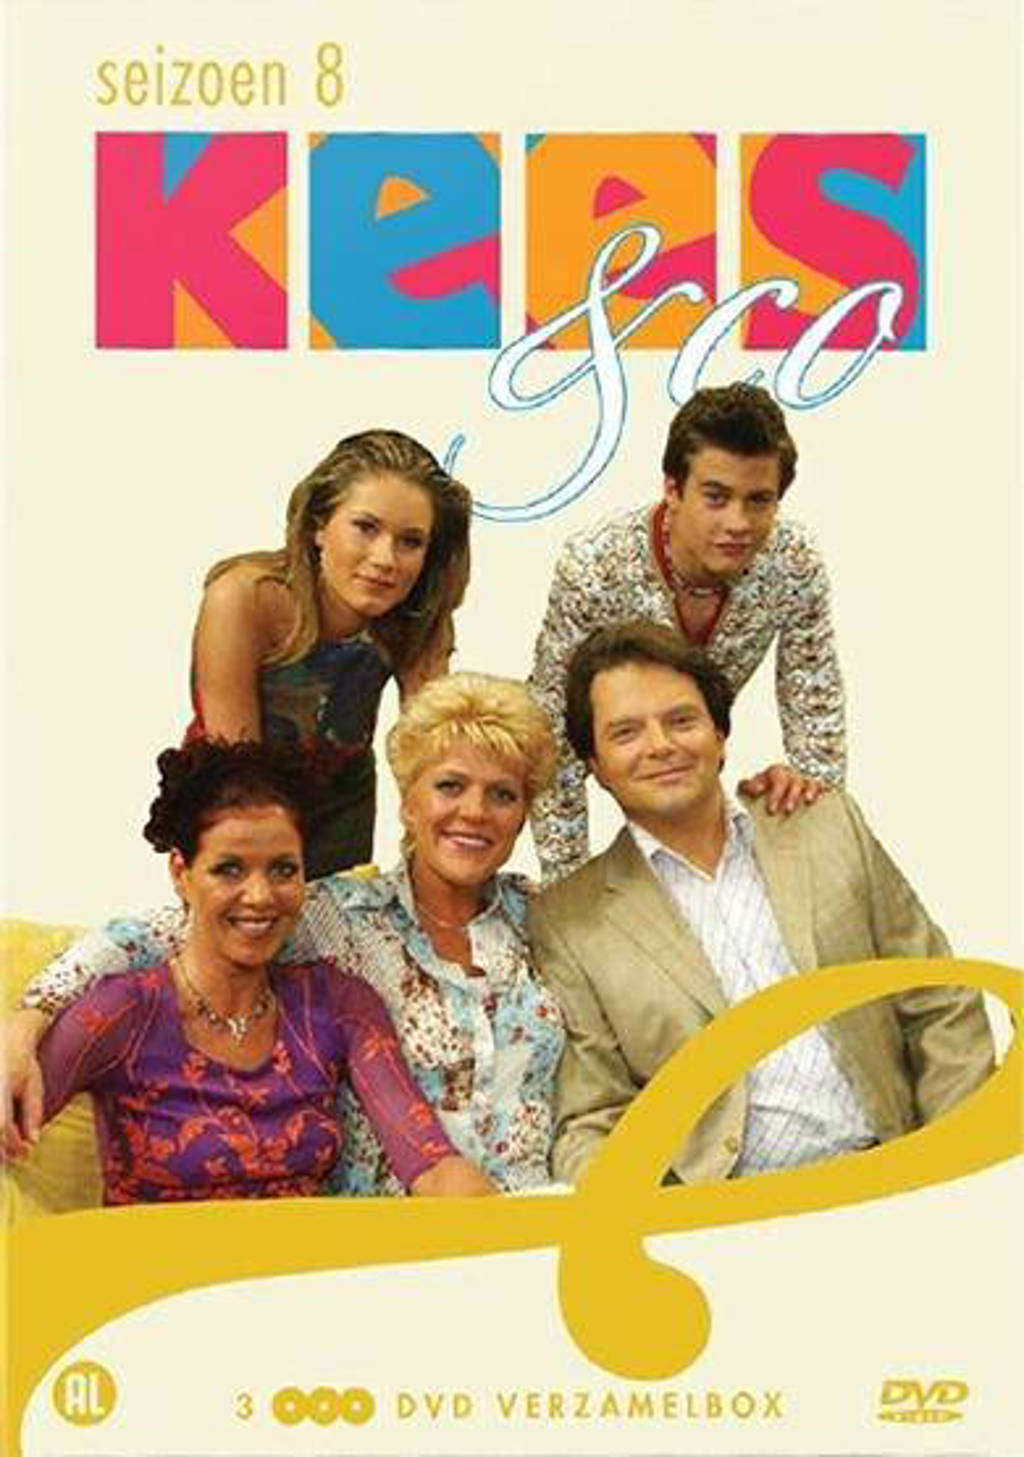 Kees & co - Seizoen 8 (DVD)